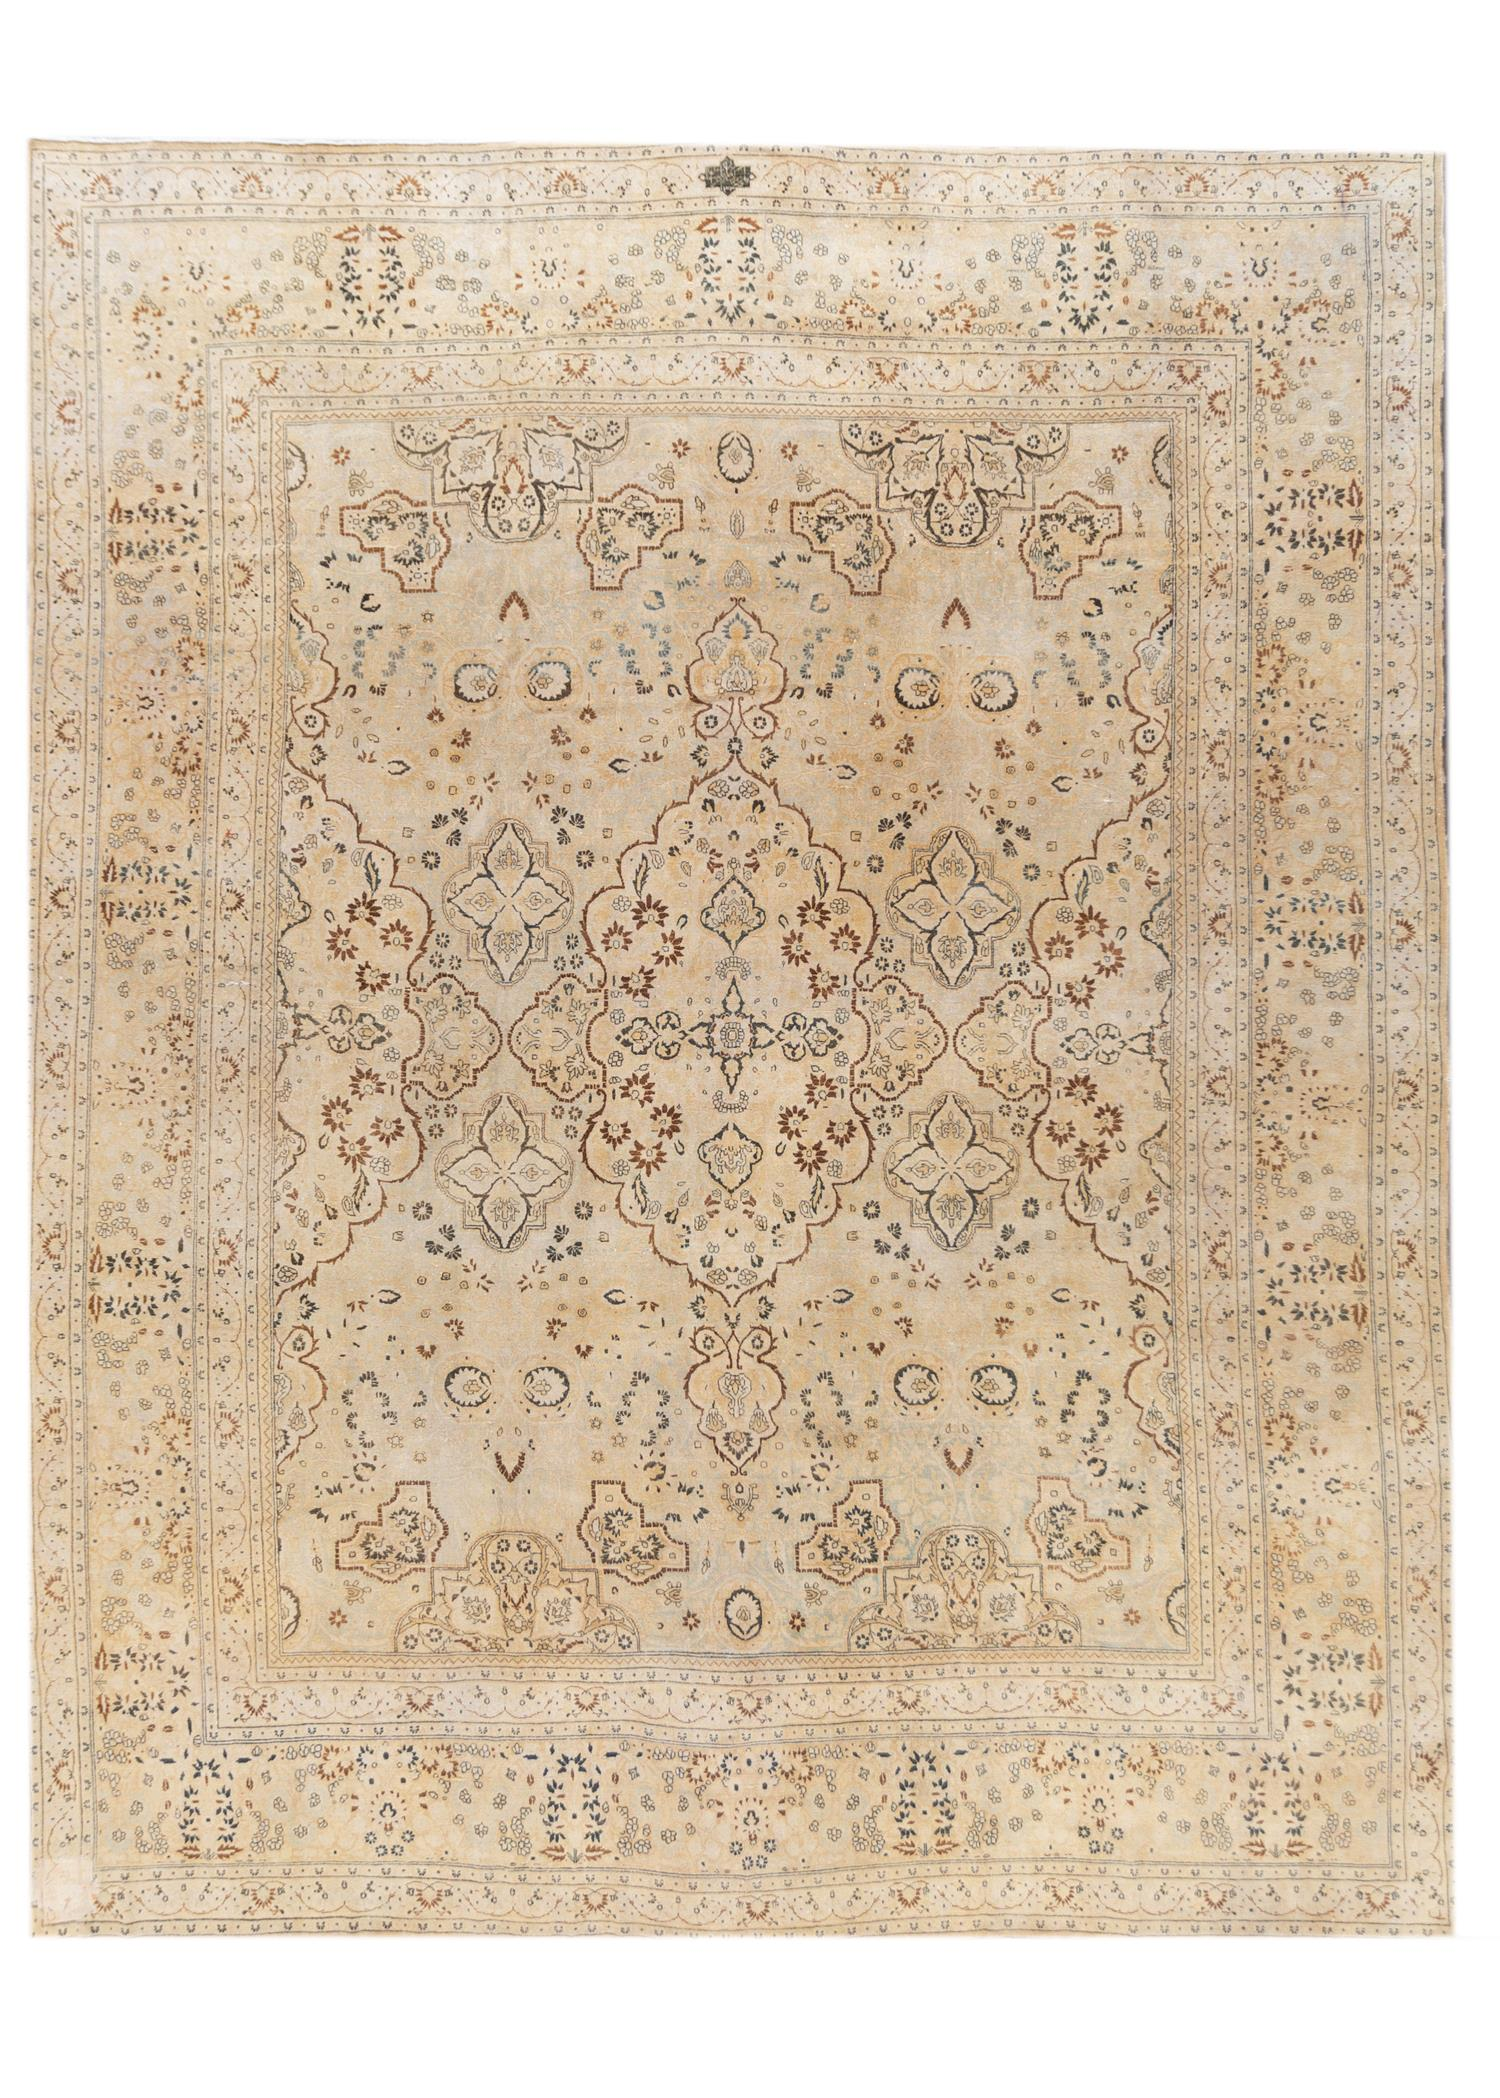 20th Century Antique Tabriz Rug, 13X16